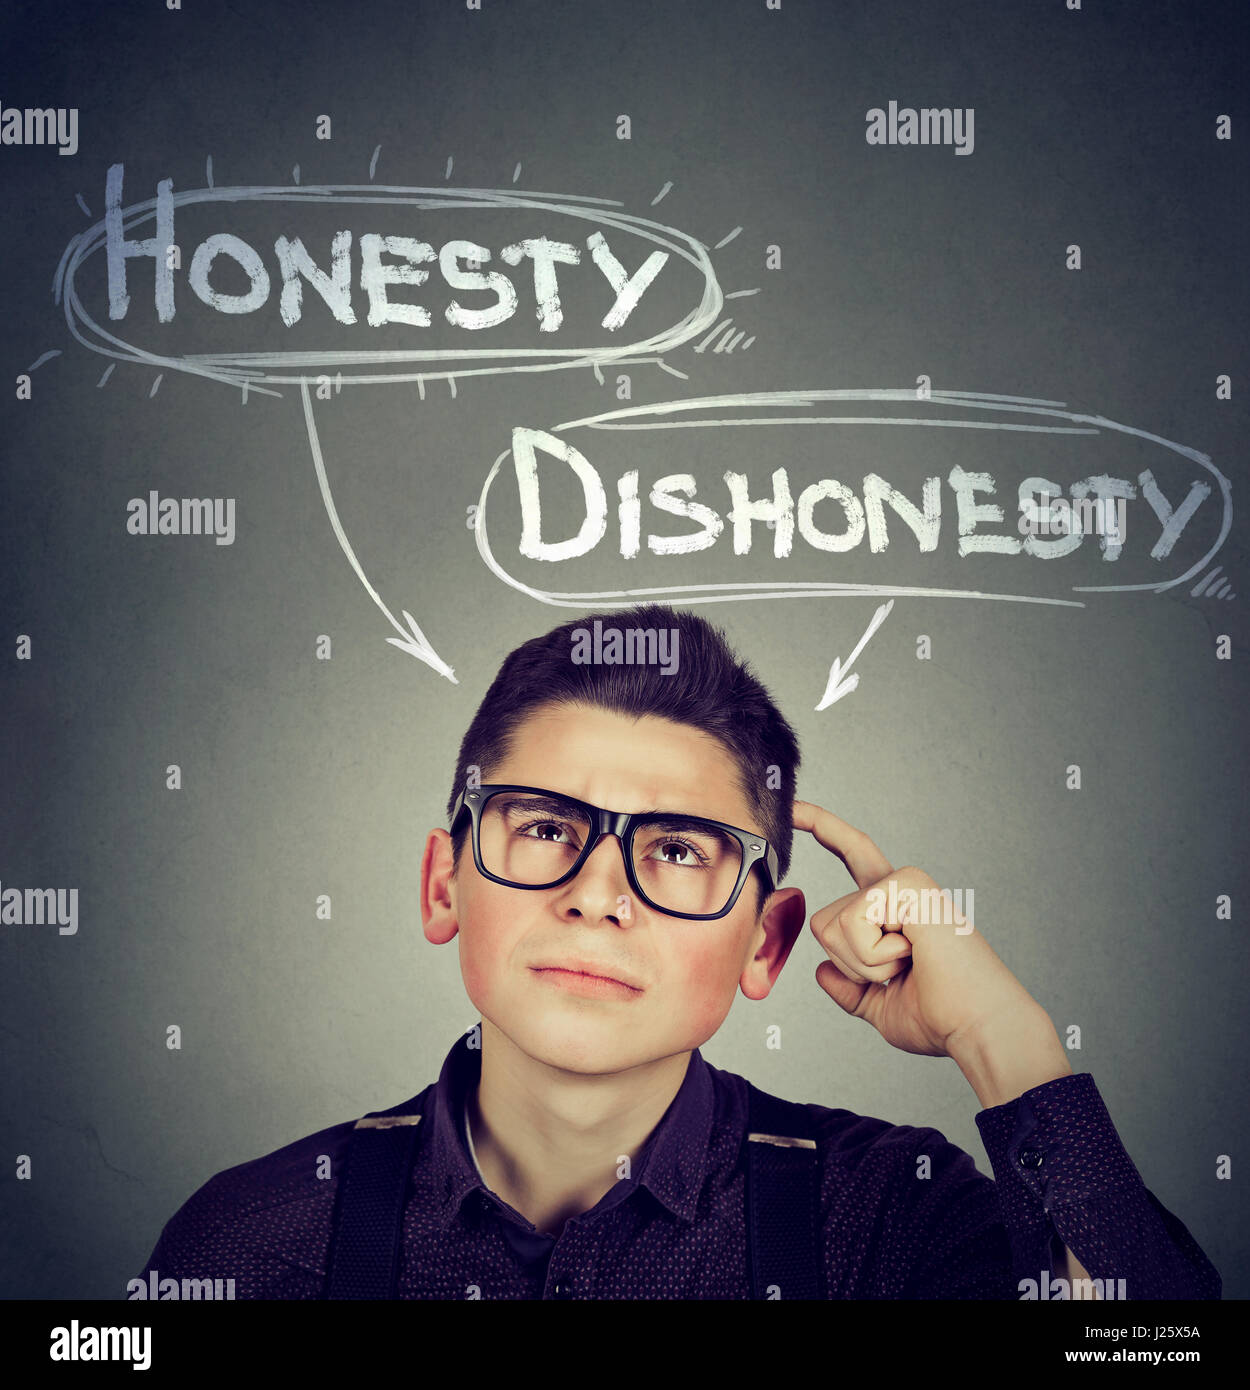 Young man making a decision honesty vs dishonesty - Stock Image